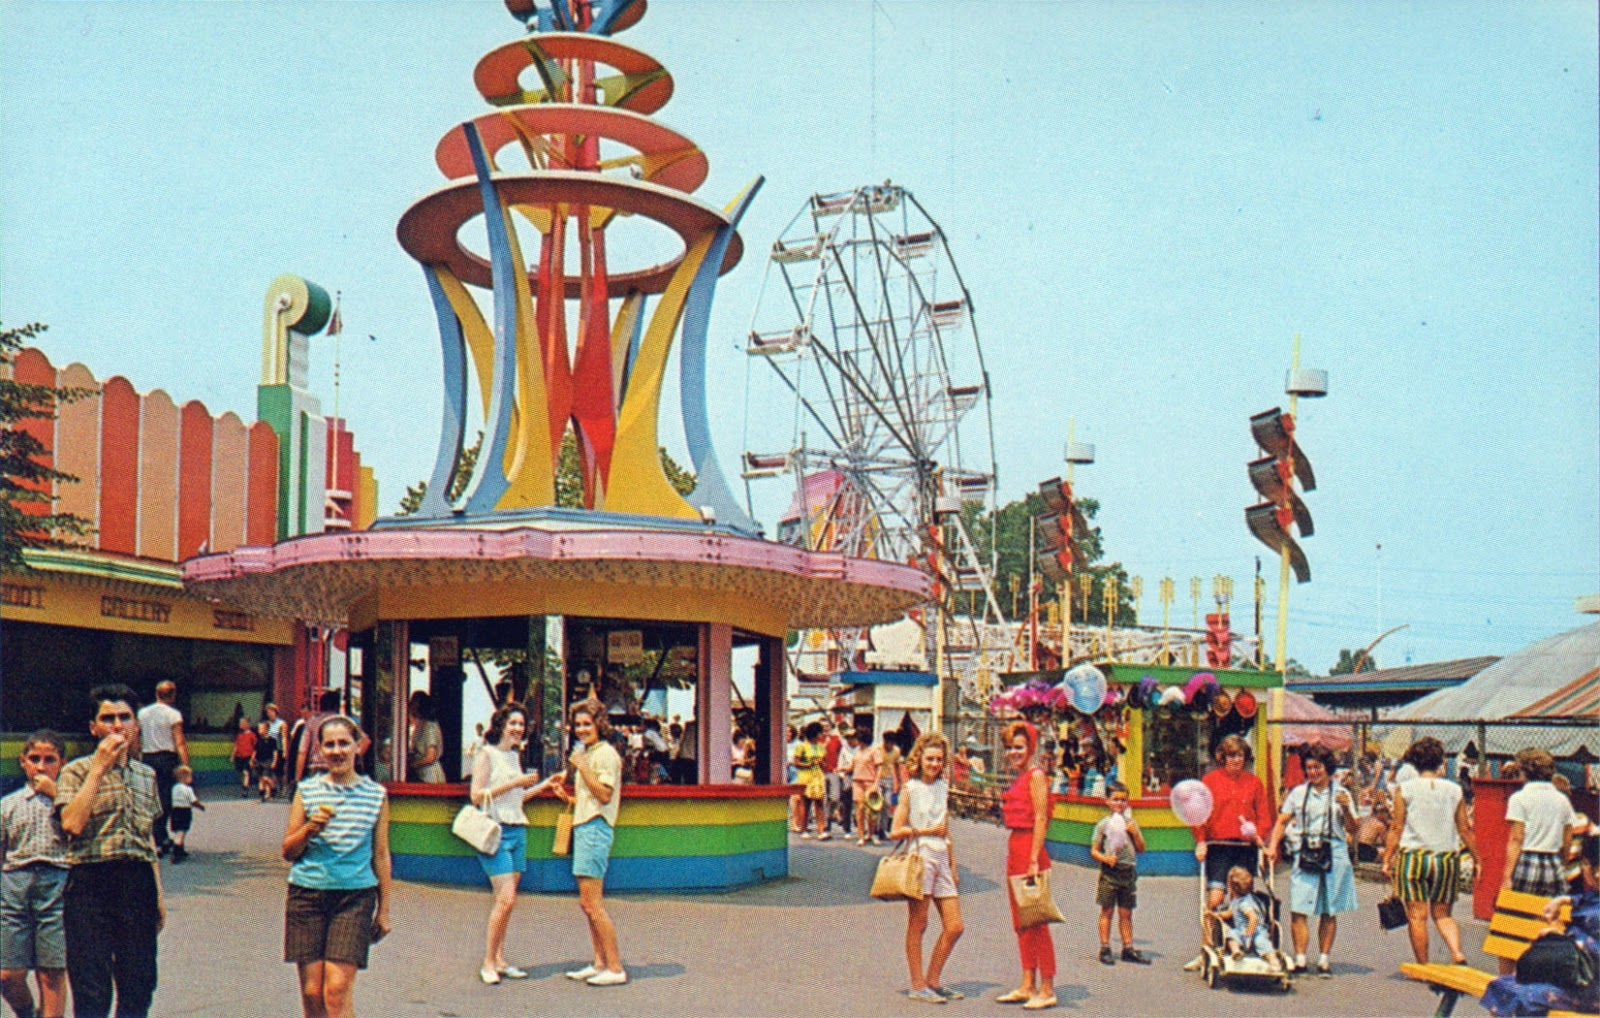 New Jersey Amusement Park On The Beach